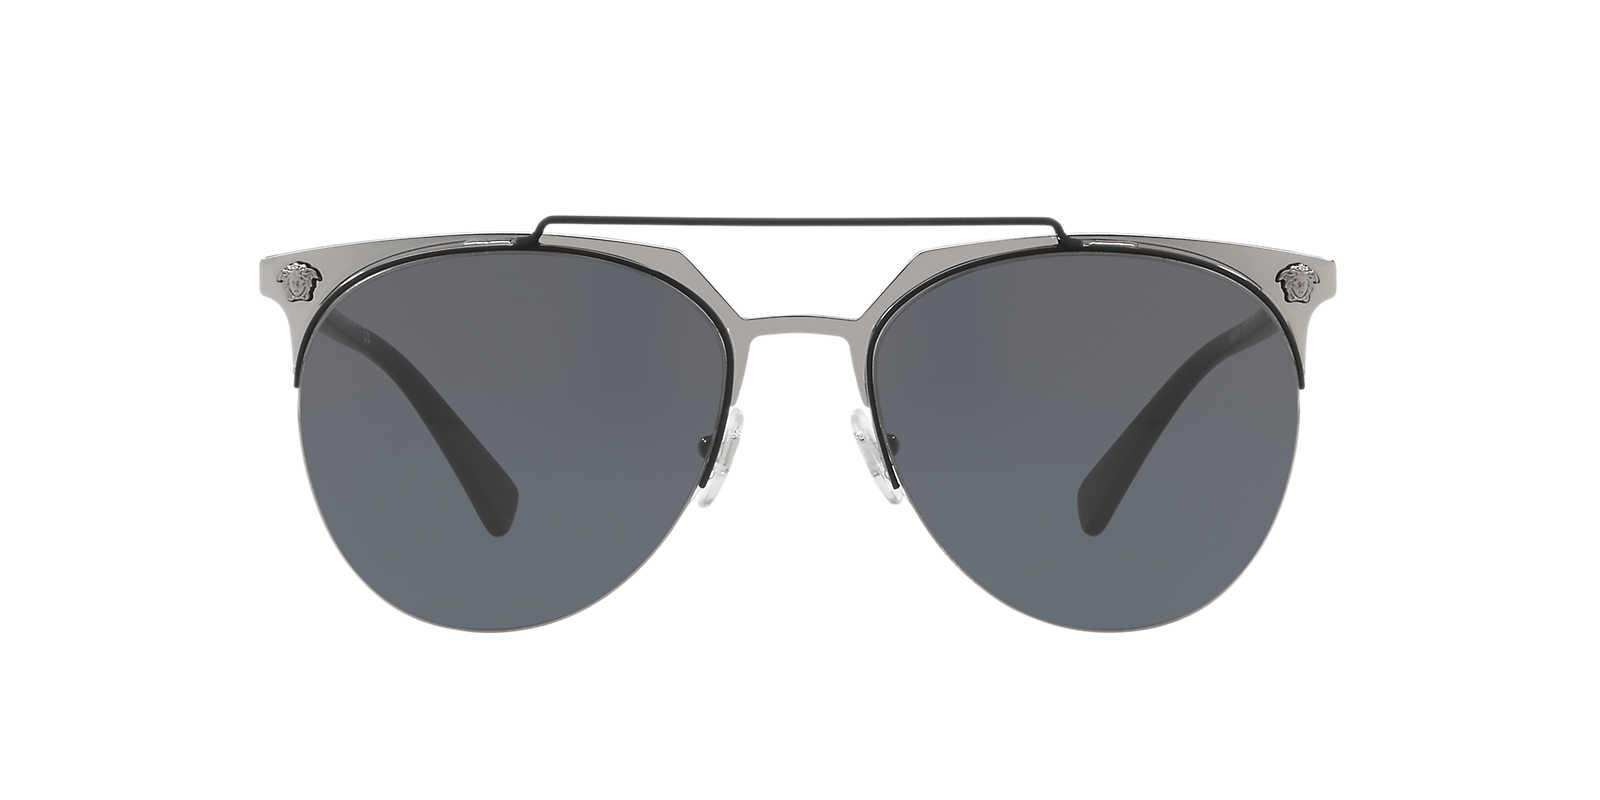 04b81f40cd31 Lyst - Versace Ve2181 Only At Sunglass Hut in Gray for Men